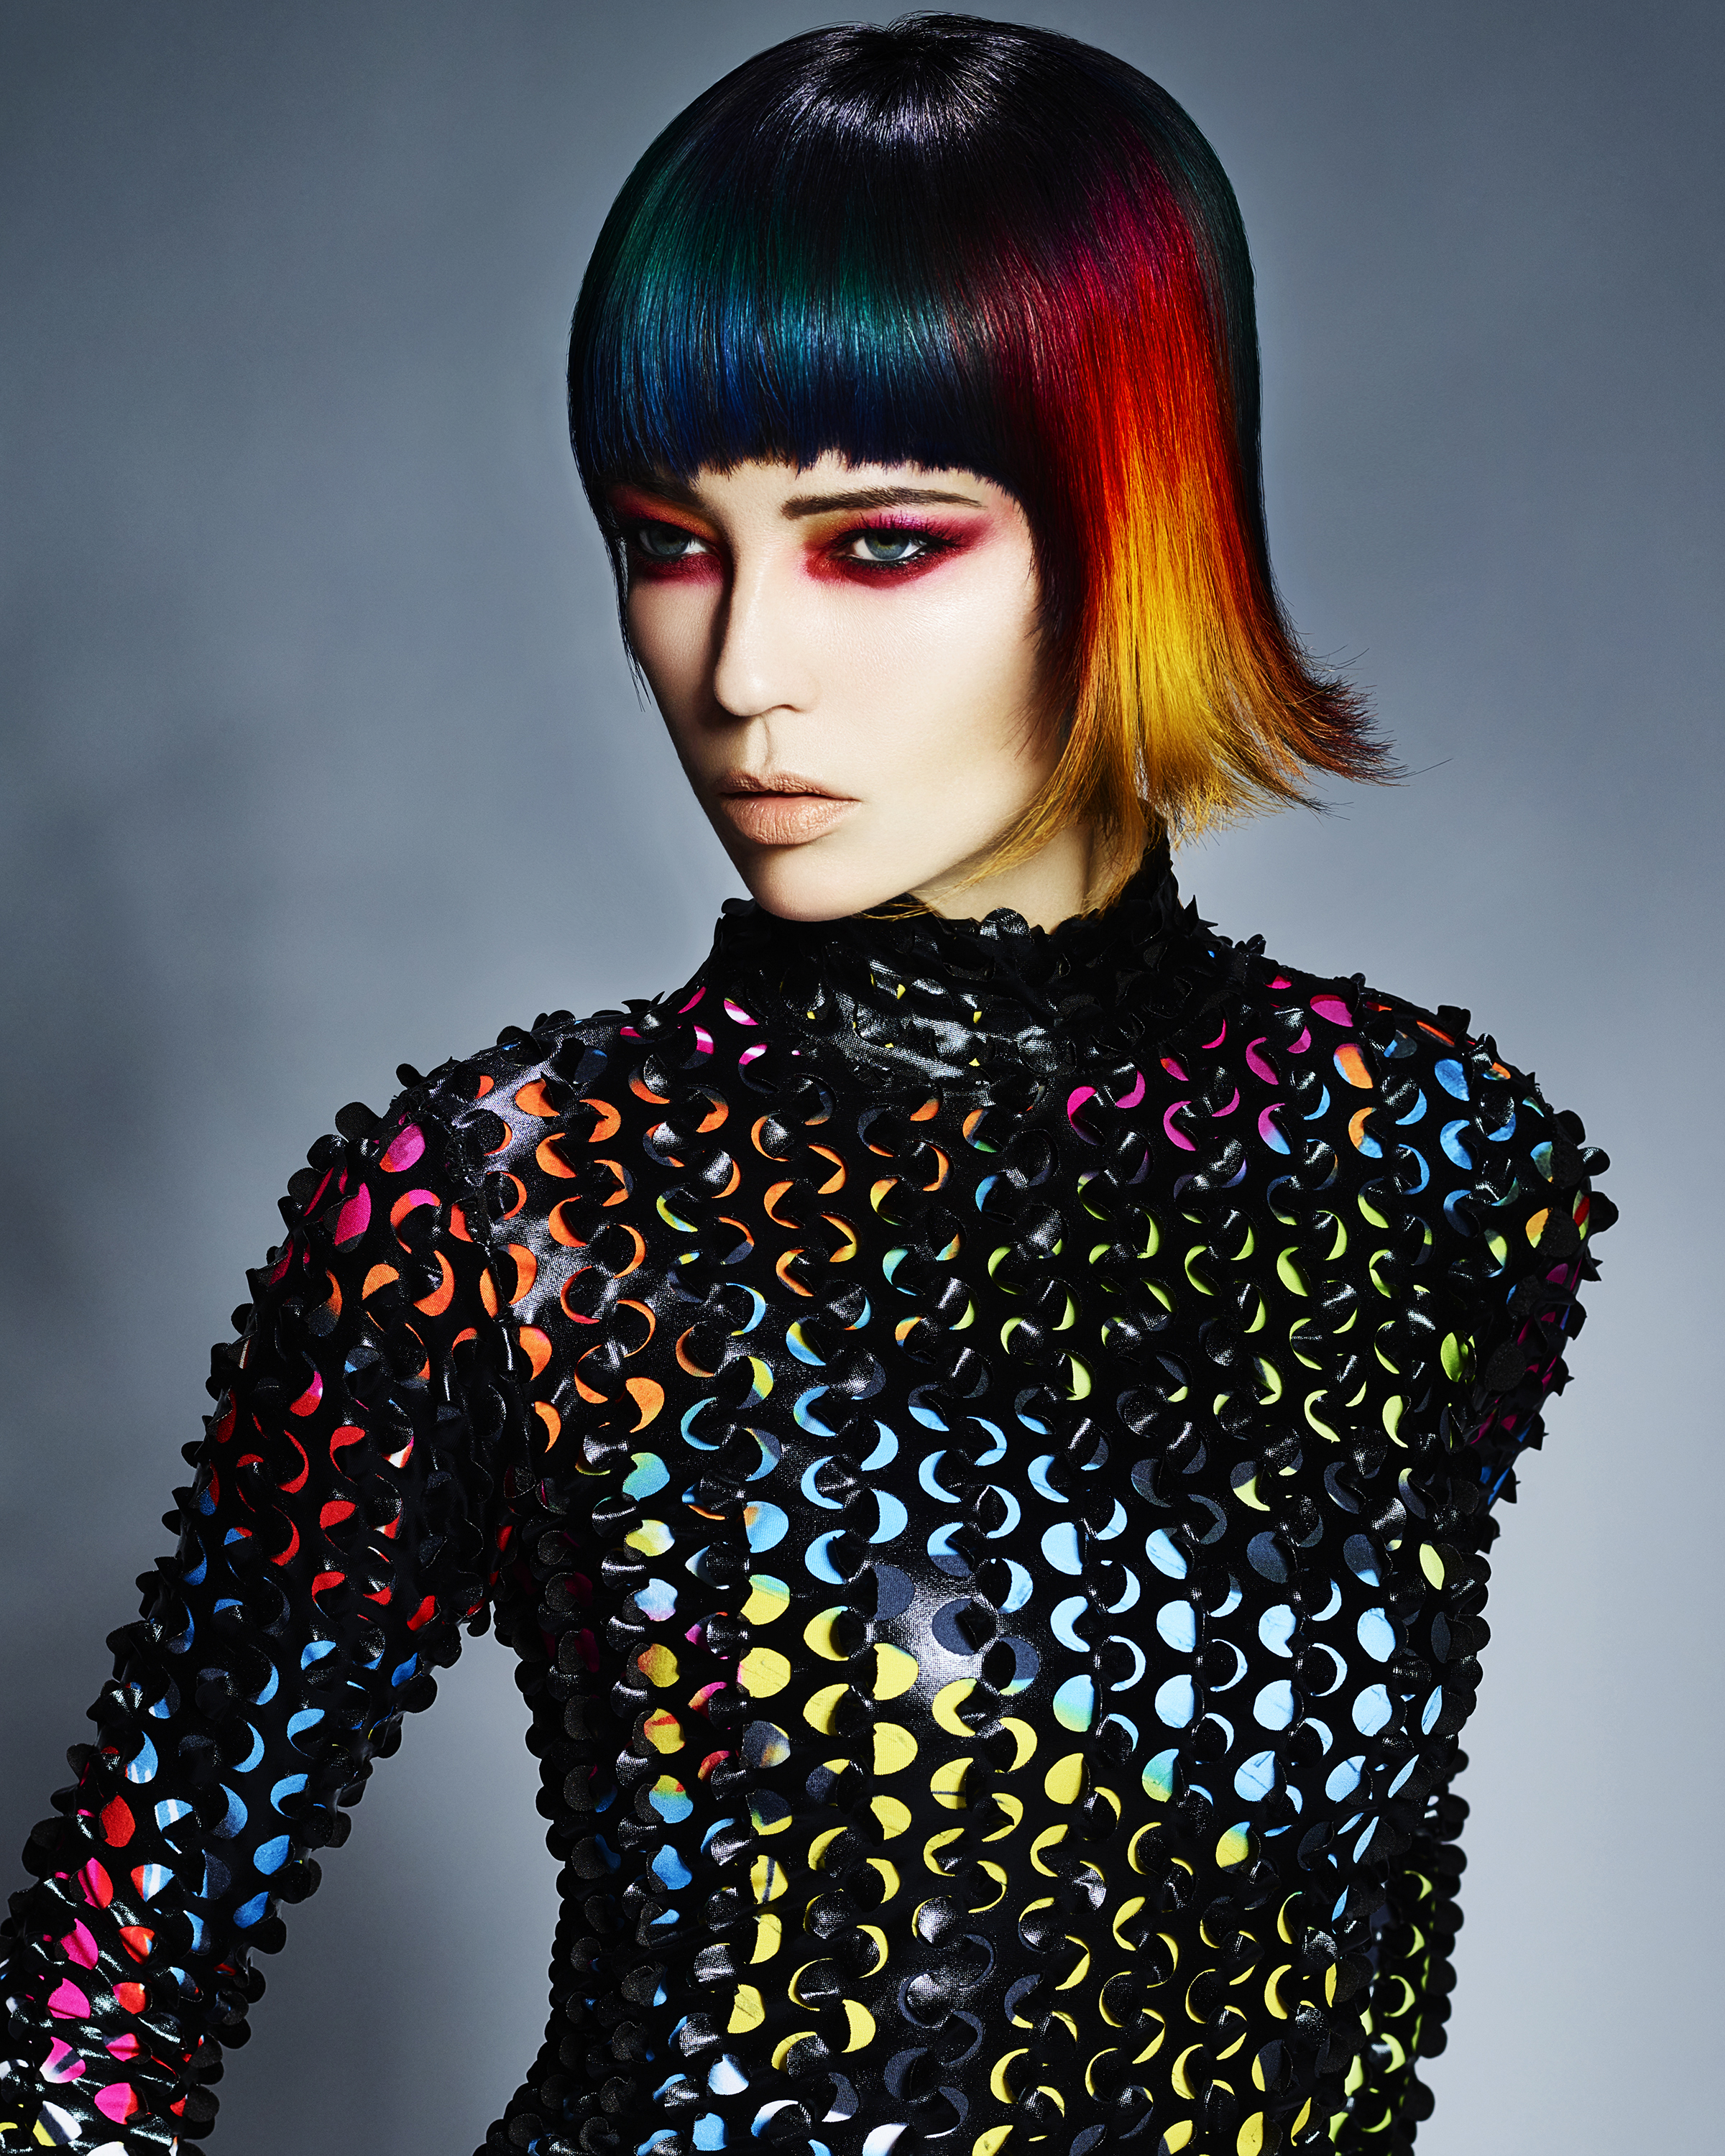 2019 NAHA Finalists: Haircolor